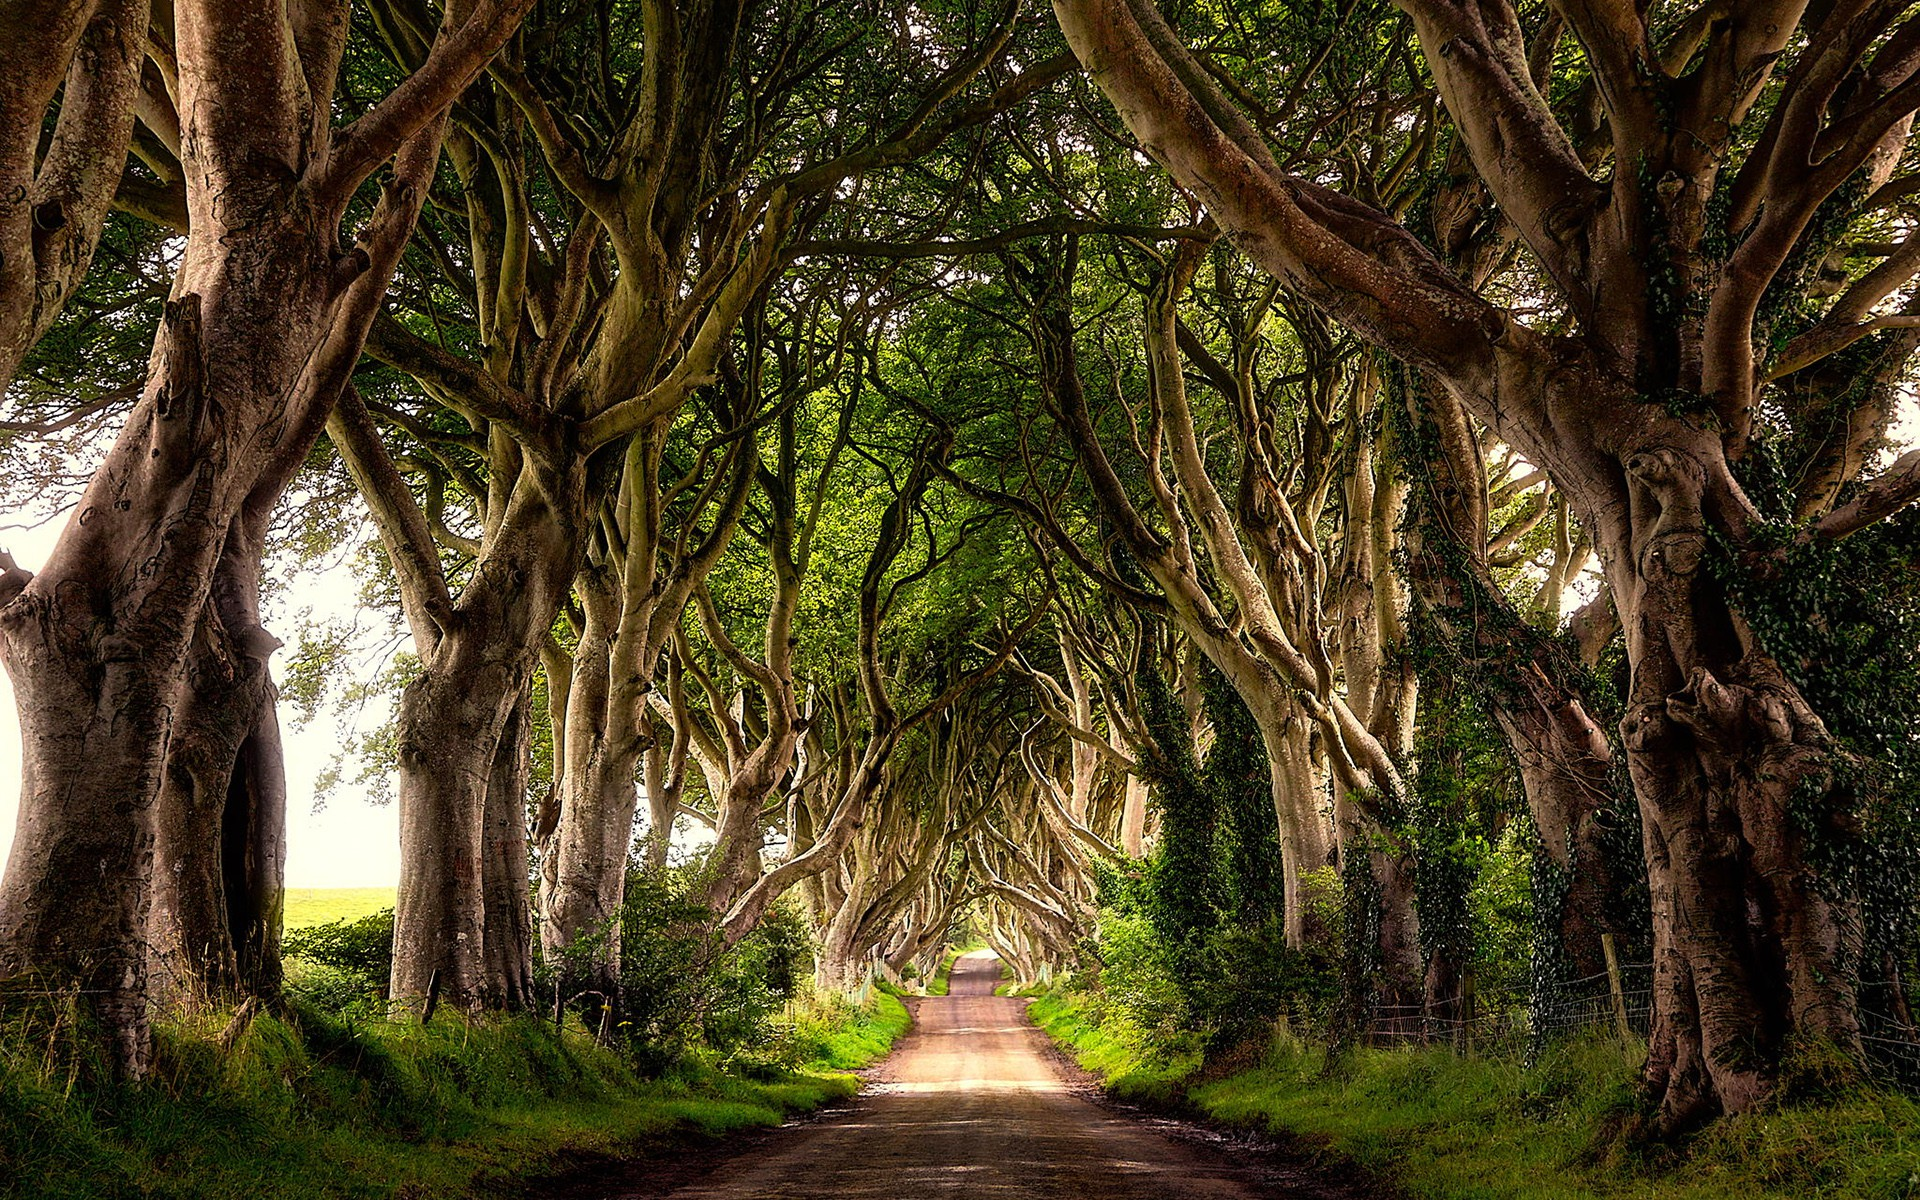 The Dark Hedges Northern Ireland Wallpaper desktop 1920x1200